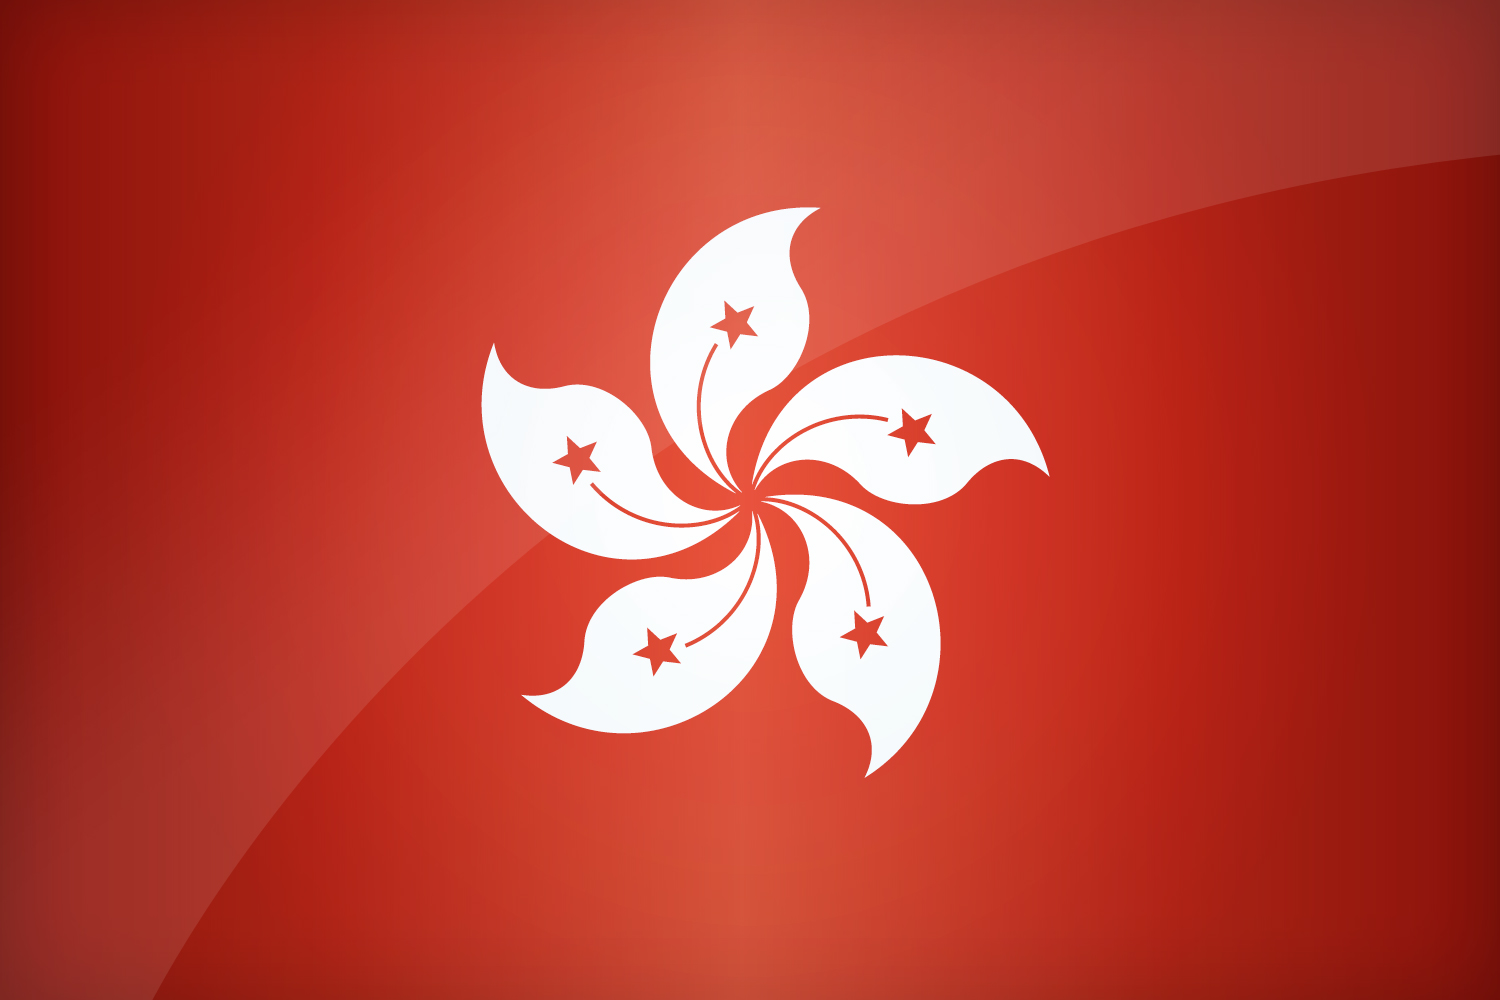 Hong Kong Flag and Description